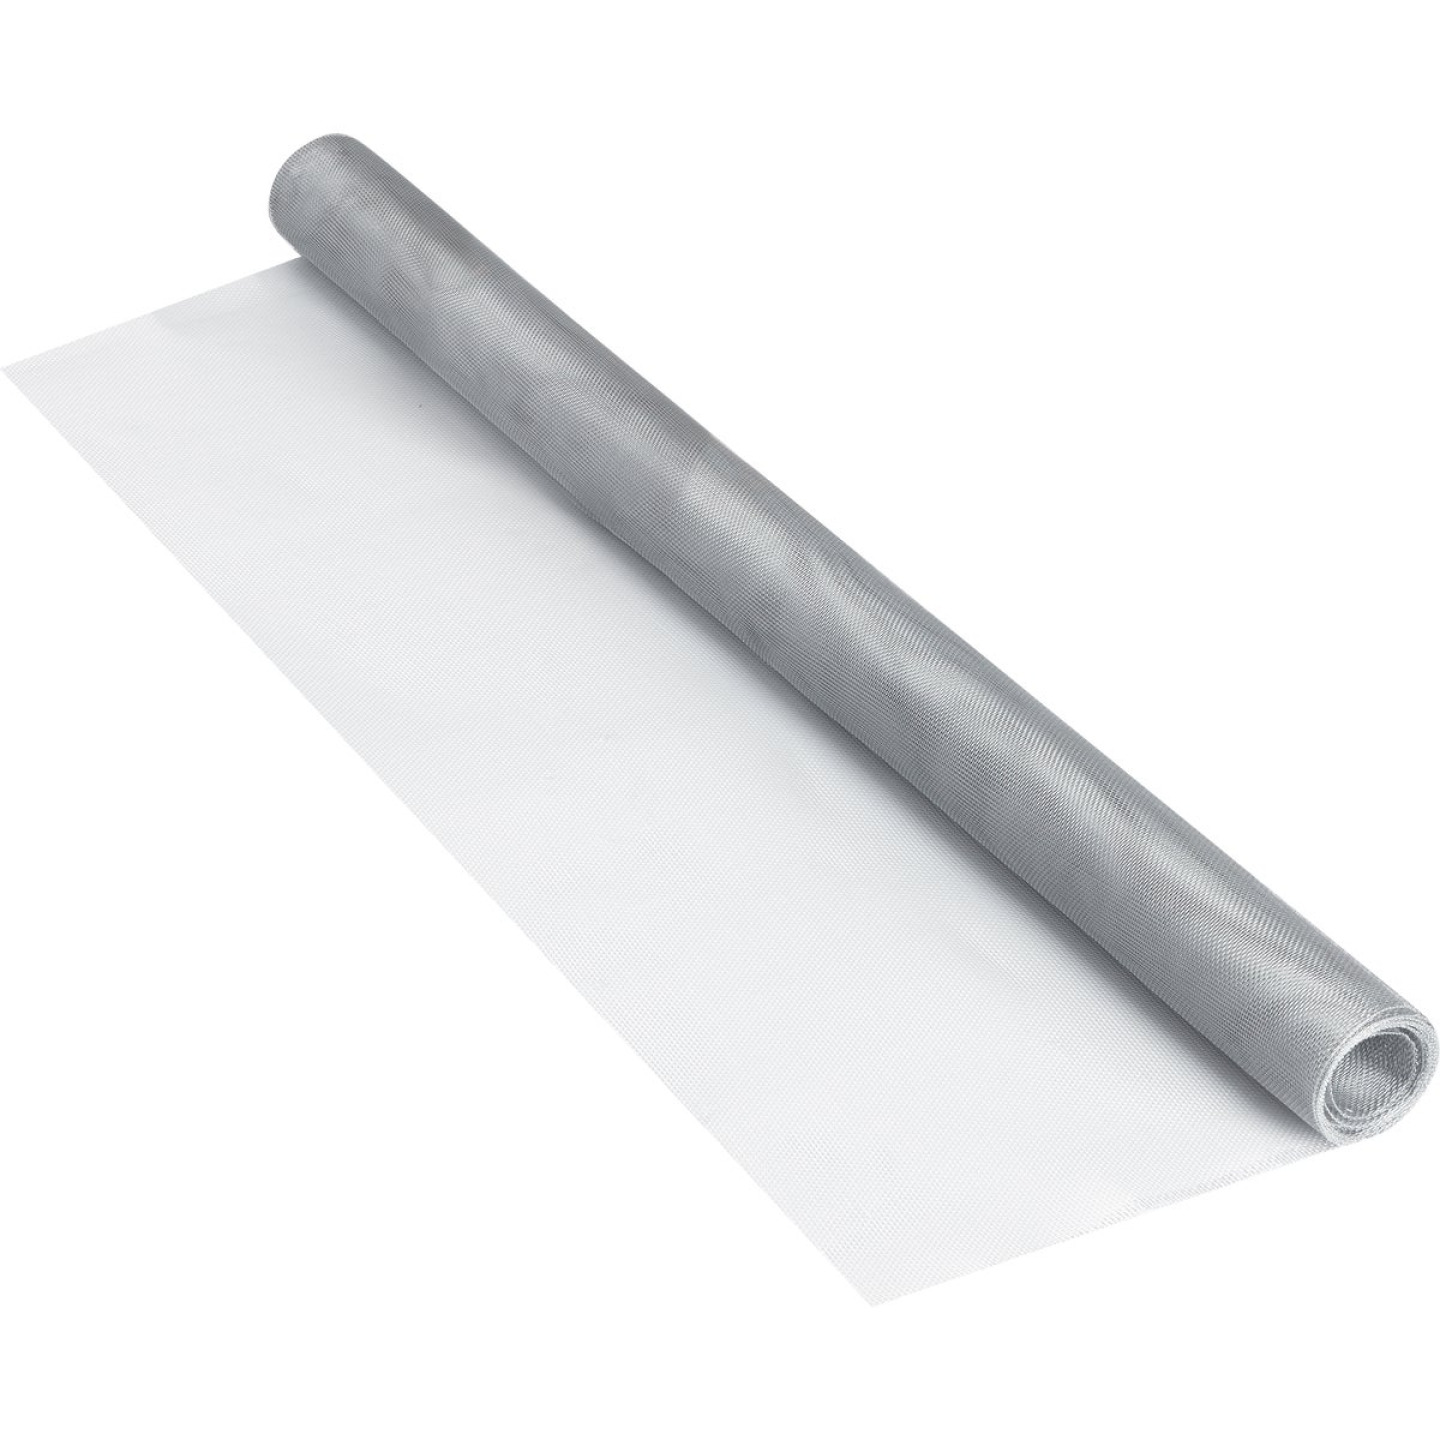 Phifer 36 In. x 84 In. Brite Aluminum Screen Ready Rolls Image 3